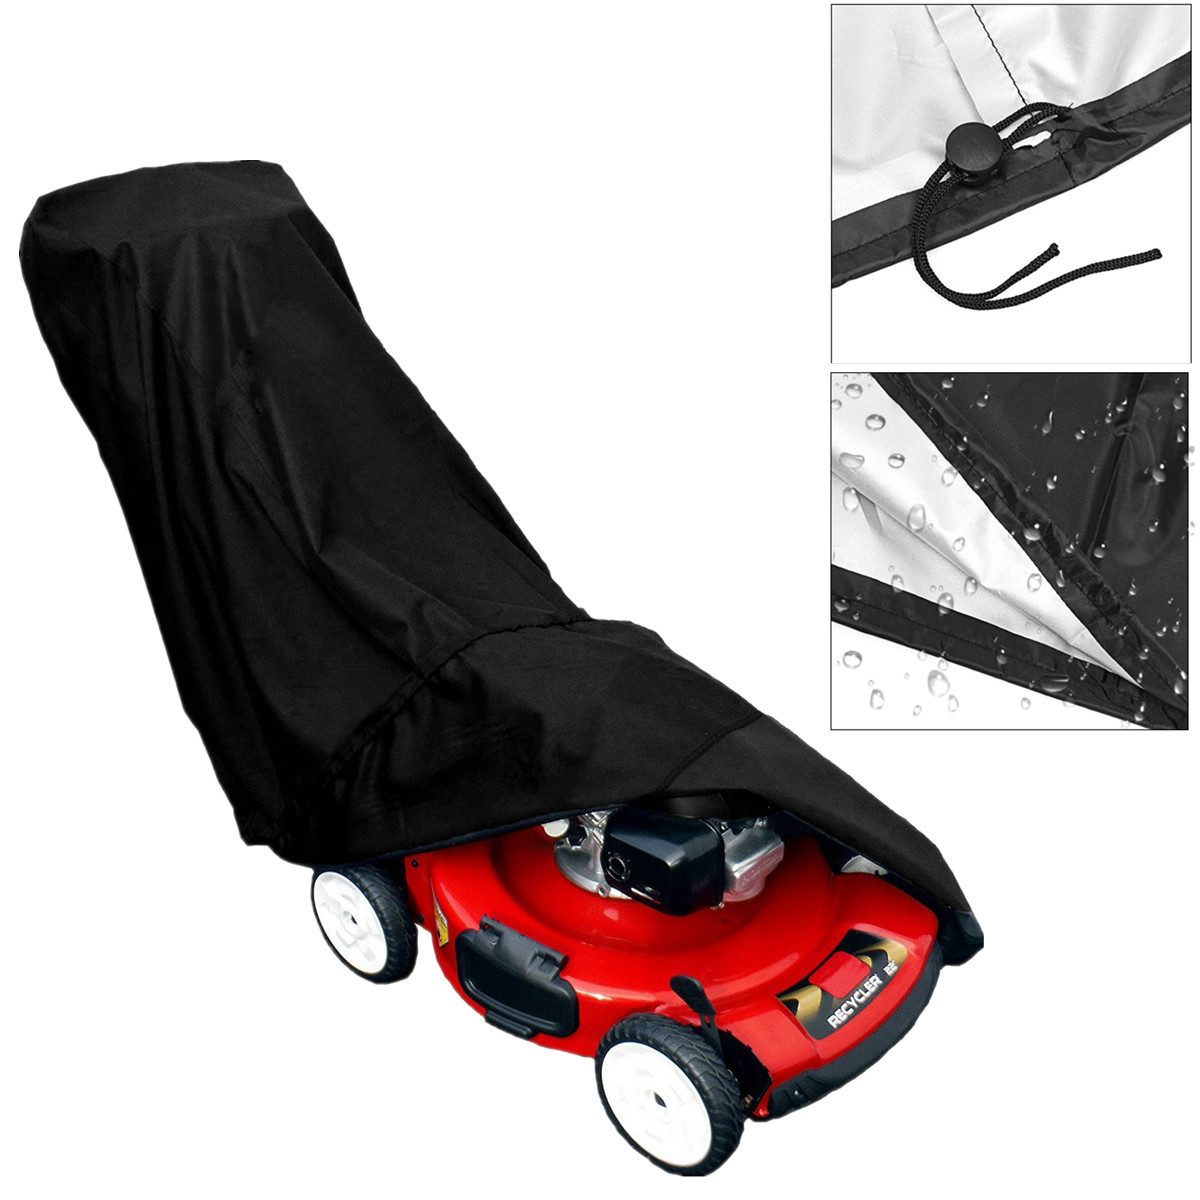 200cmx85cmx40cm/78''x33.5''x15.7''  black  lawnmower cover Riding mower grass shovel hood polyester hood(China)